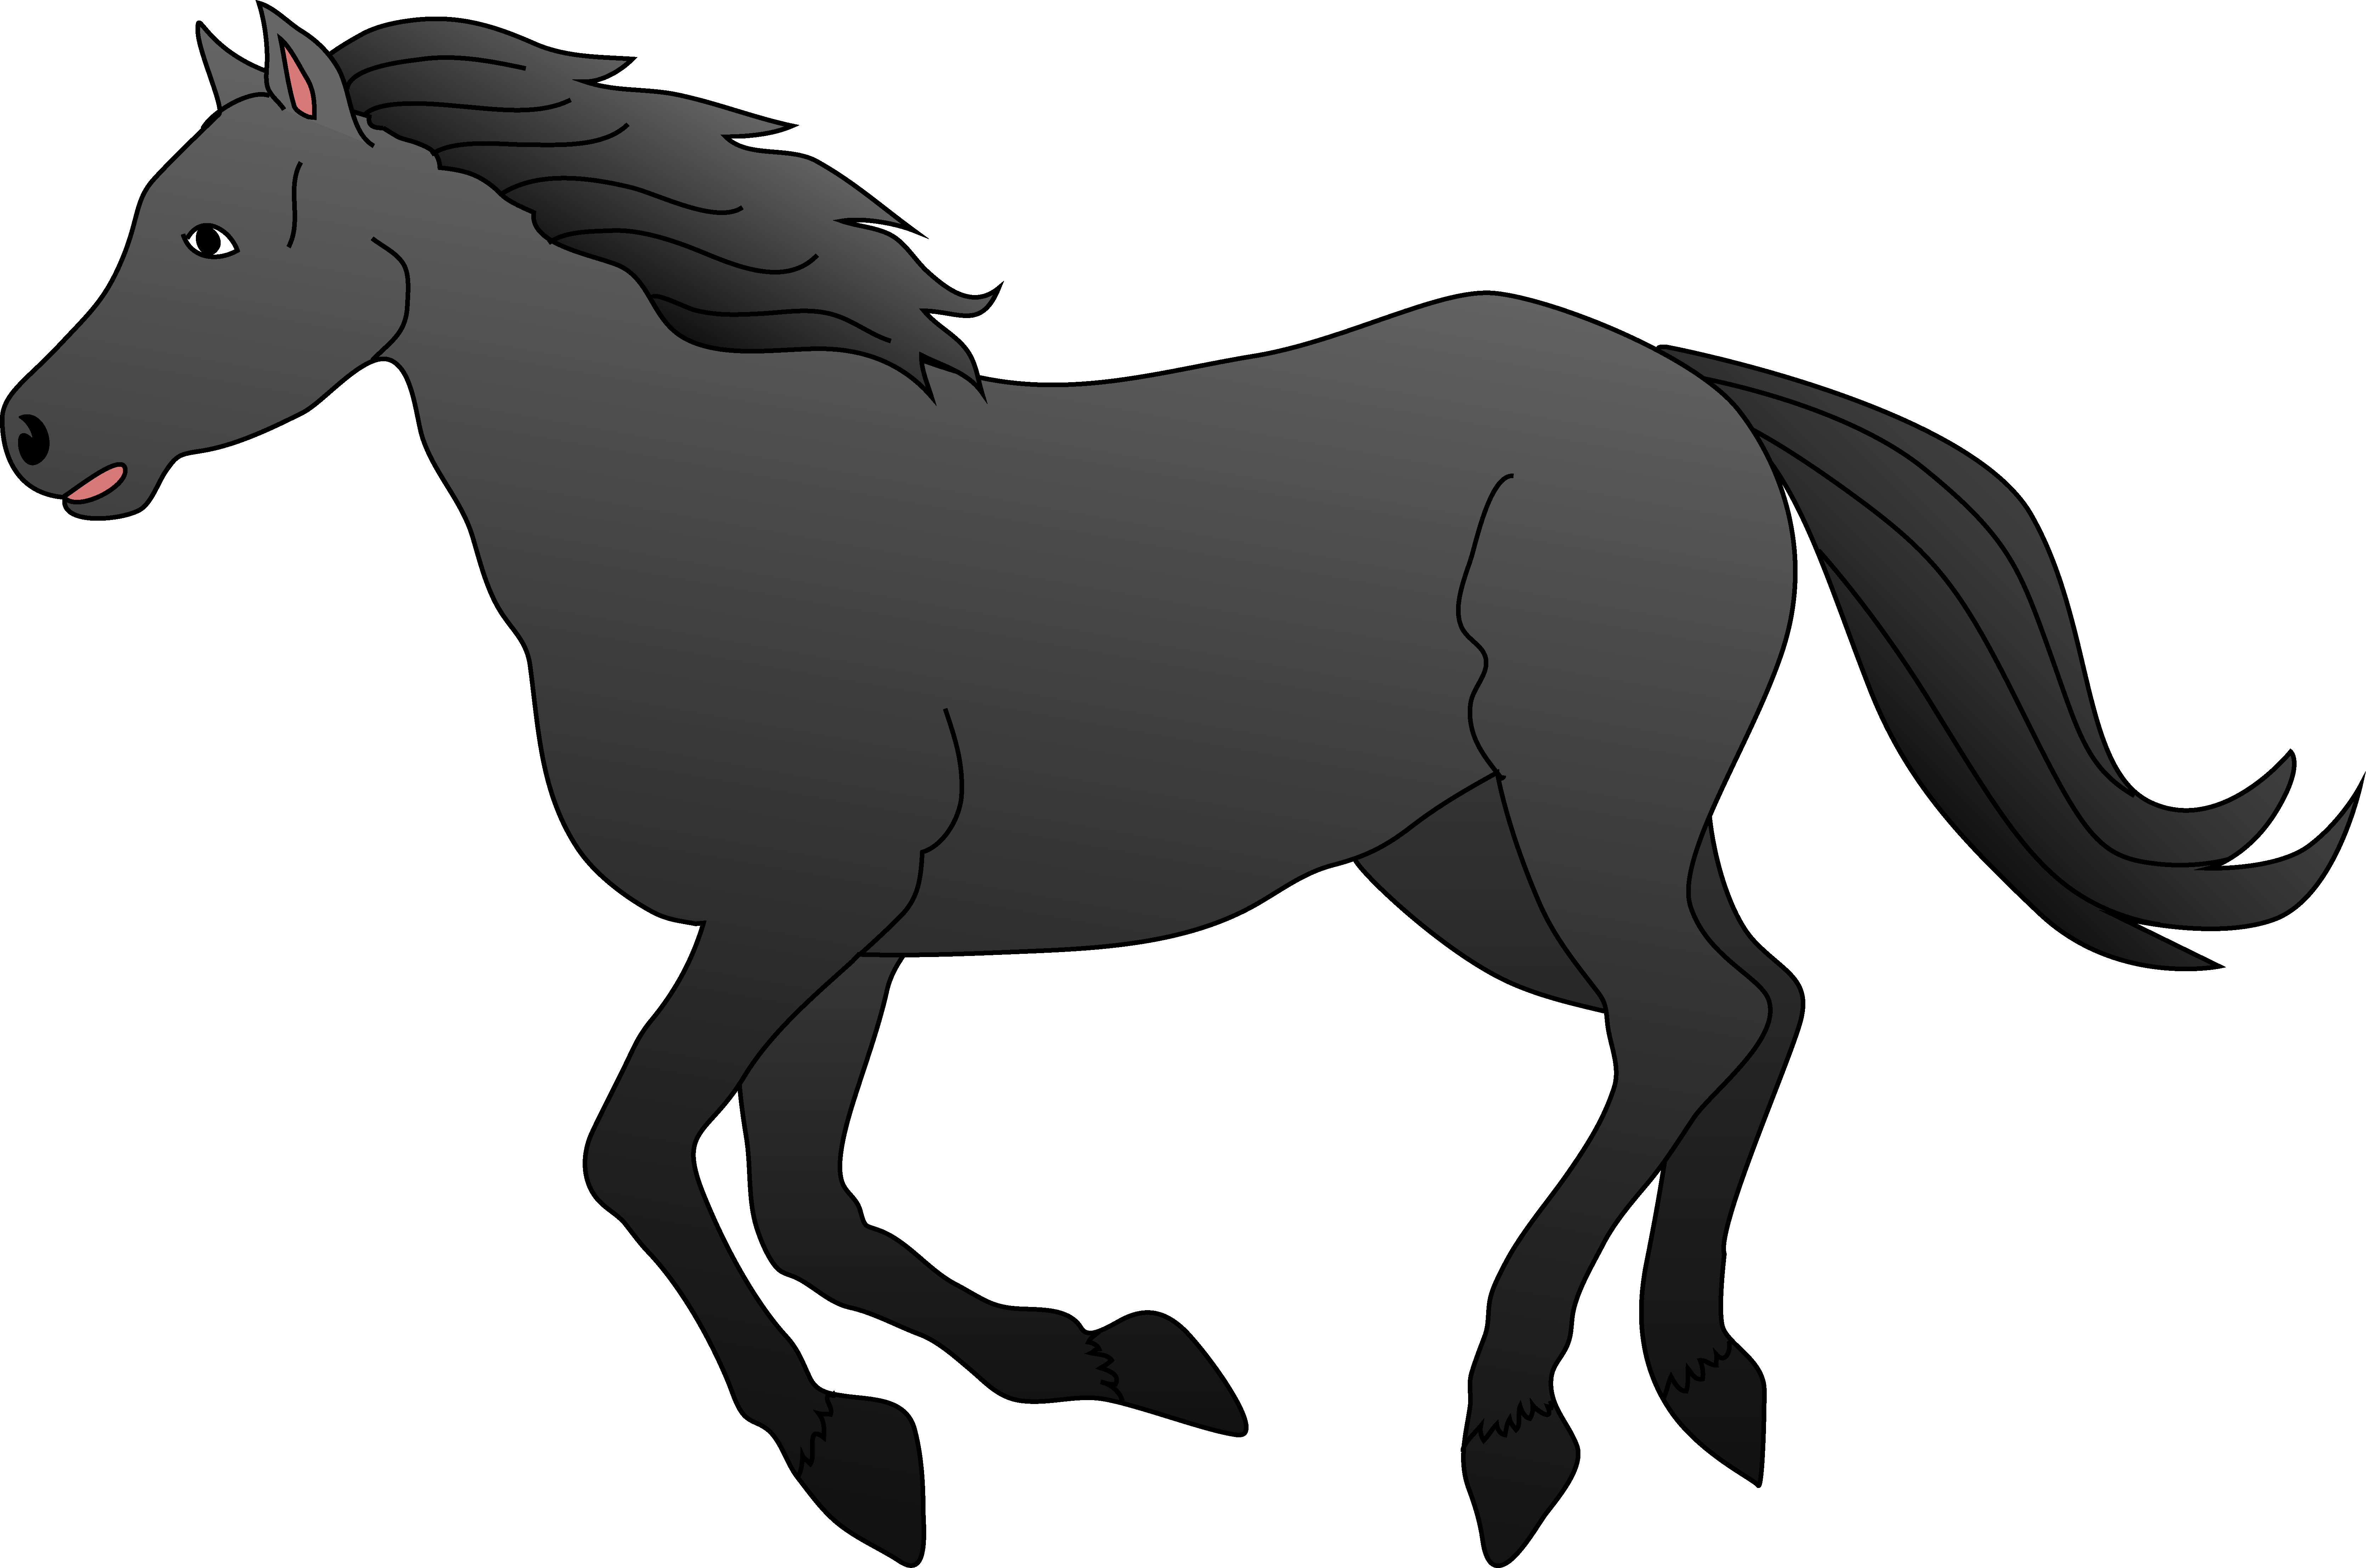 svg black and white Horse clipart. Clip art black and